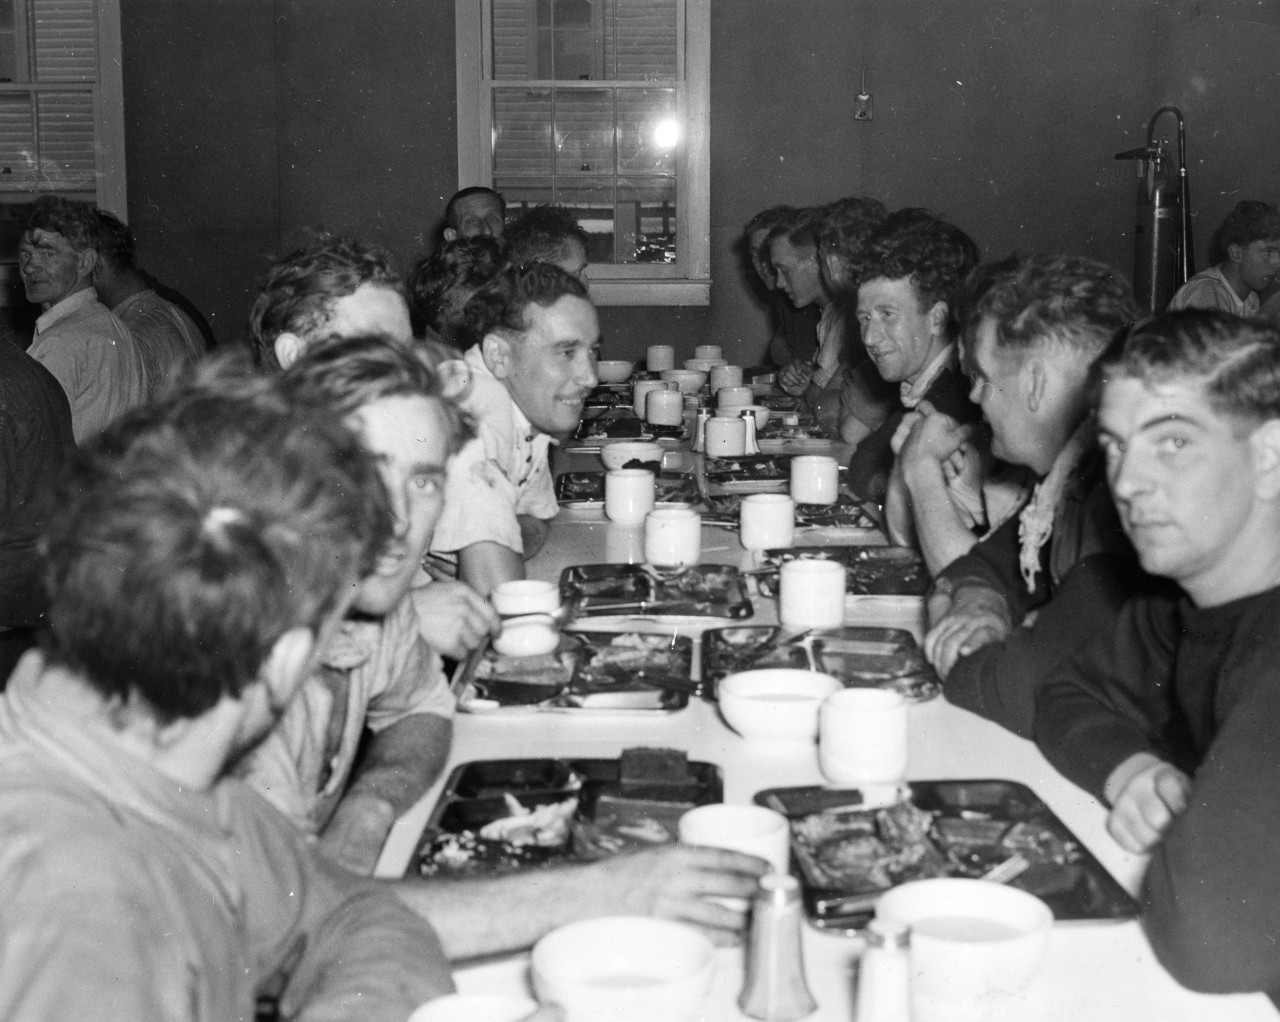 Empire Thrush's sailors sample U.S. Navy chow at the Receiving Station, NOB Norfolk, 15 April 1942 (U.S. Navy Photograph 80-CF-105-4A-2, National Archives and Records Administration, Still Pictures Branch, College Park, Md.)